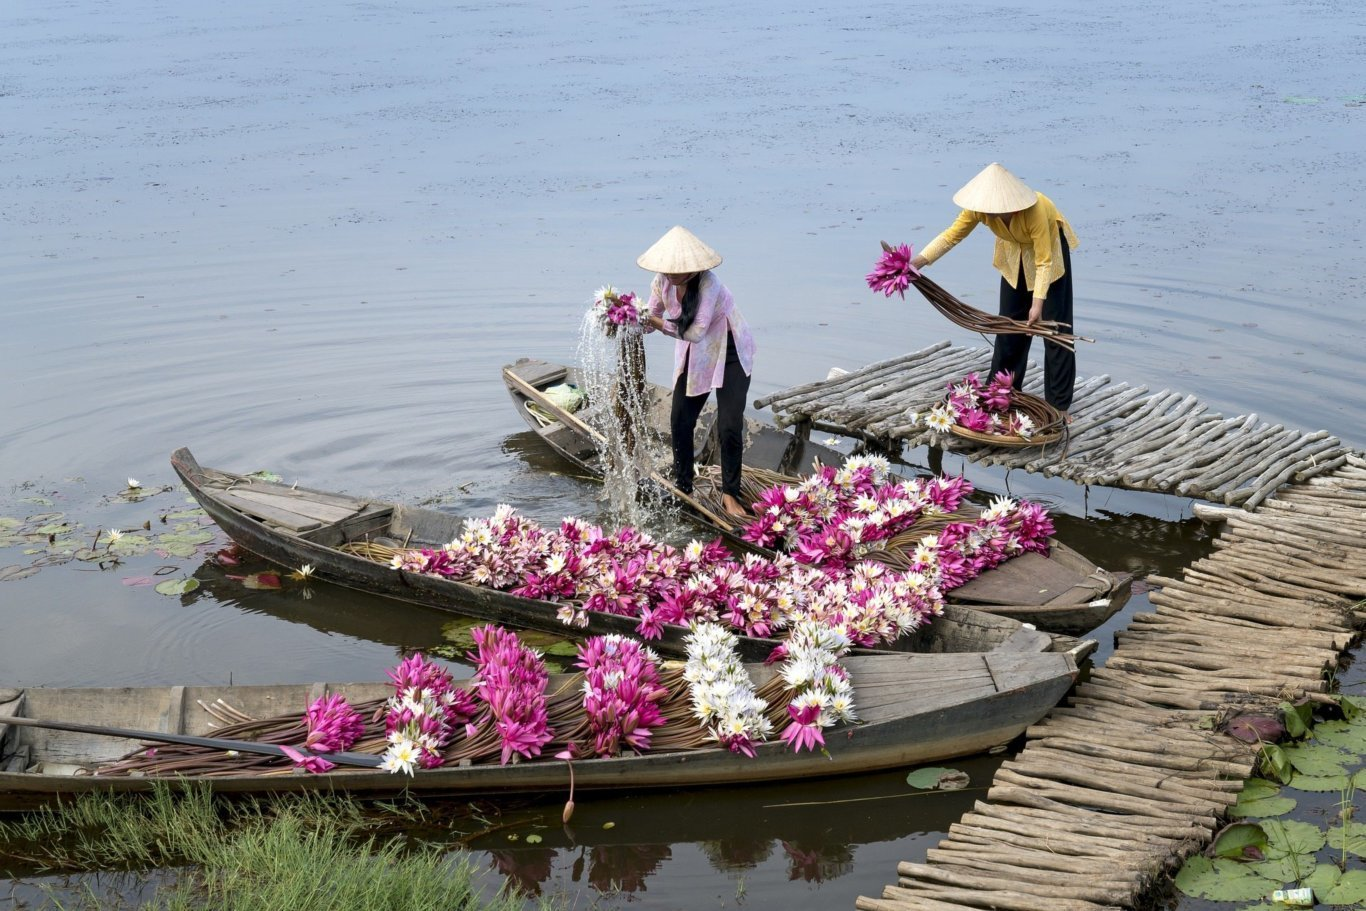 4-Day River to the City in Southern Vietnam - Vietnam Itinerary